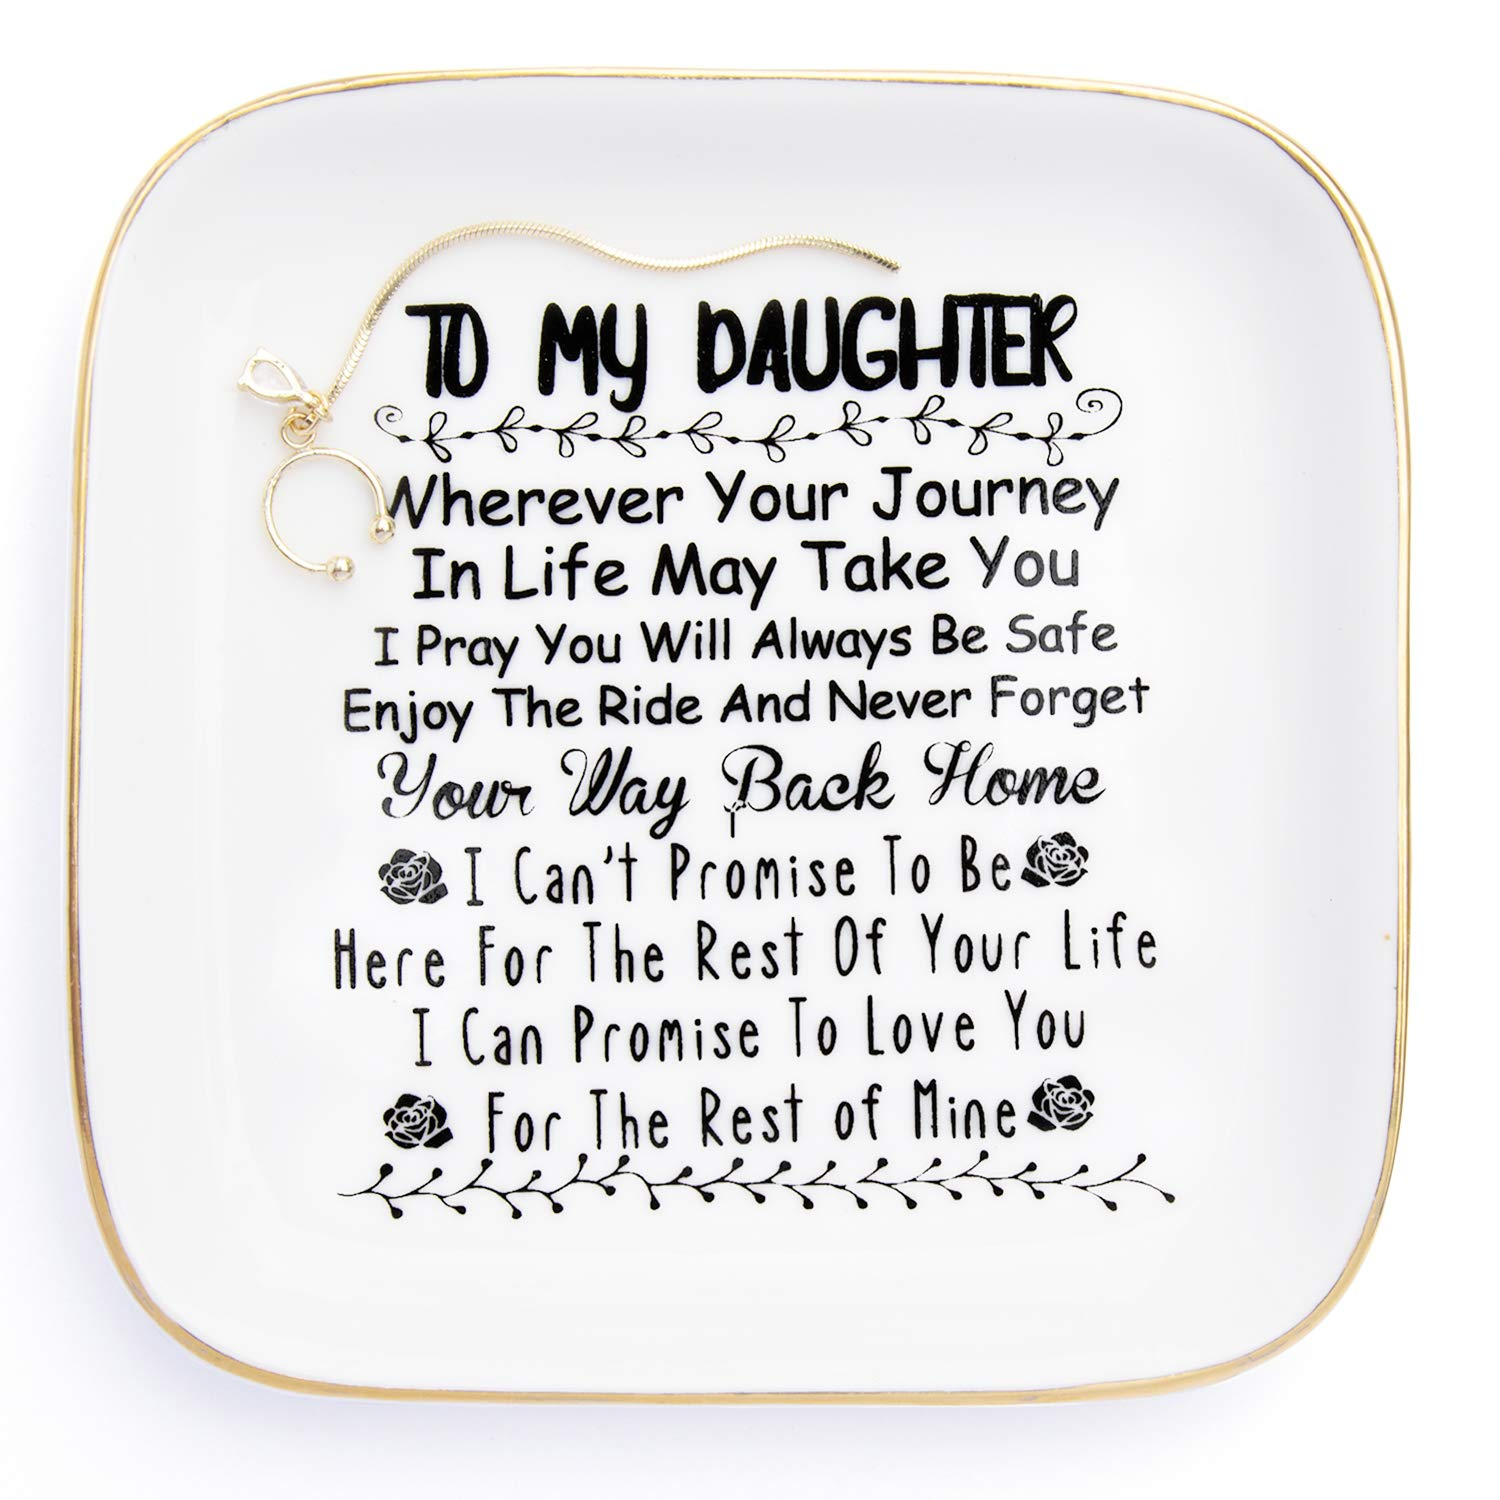 "Daughter Gifts from Mom ""to My Daughter"" - Jewelry Ring Dish for My Girls - Thoughtful Gifts for Daughter Birthday, Mothers Day,Valentine's Day, Graduation Gift for Daughter Girls"